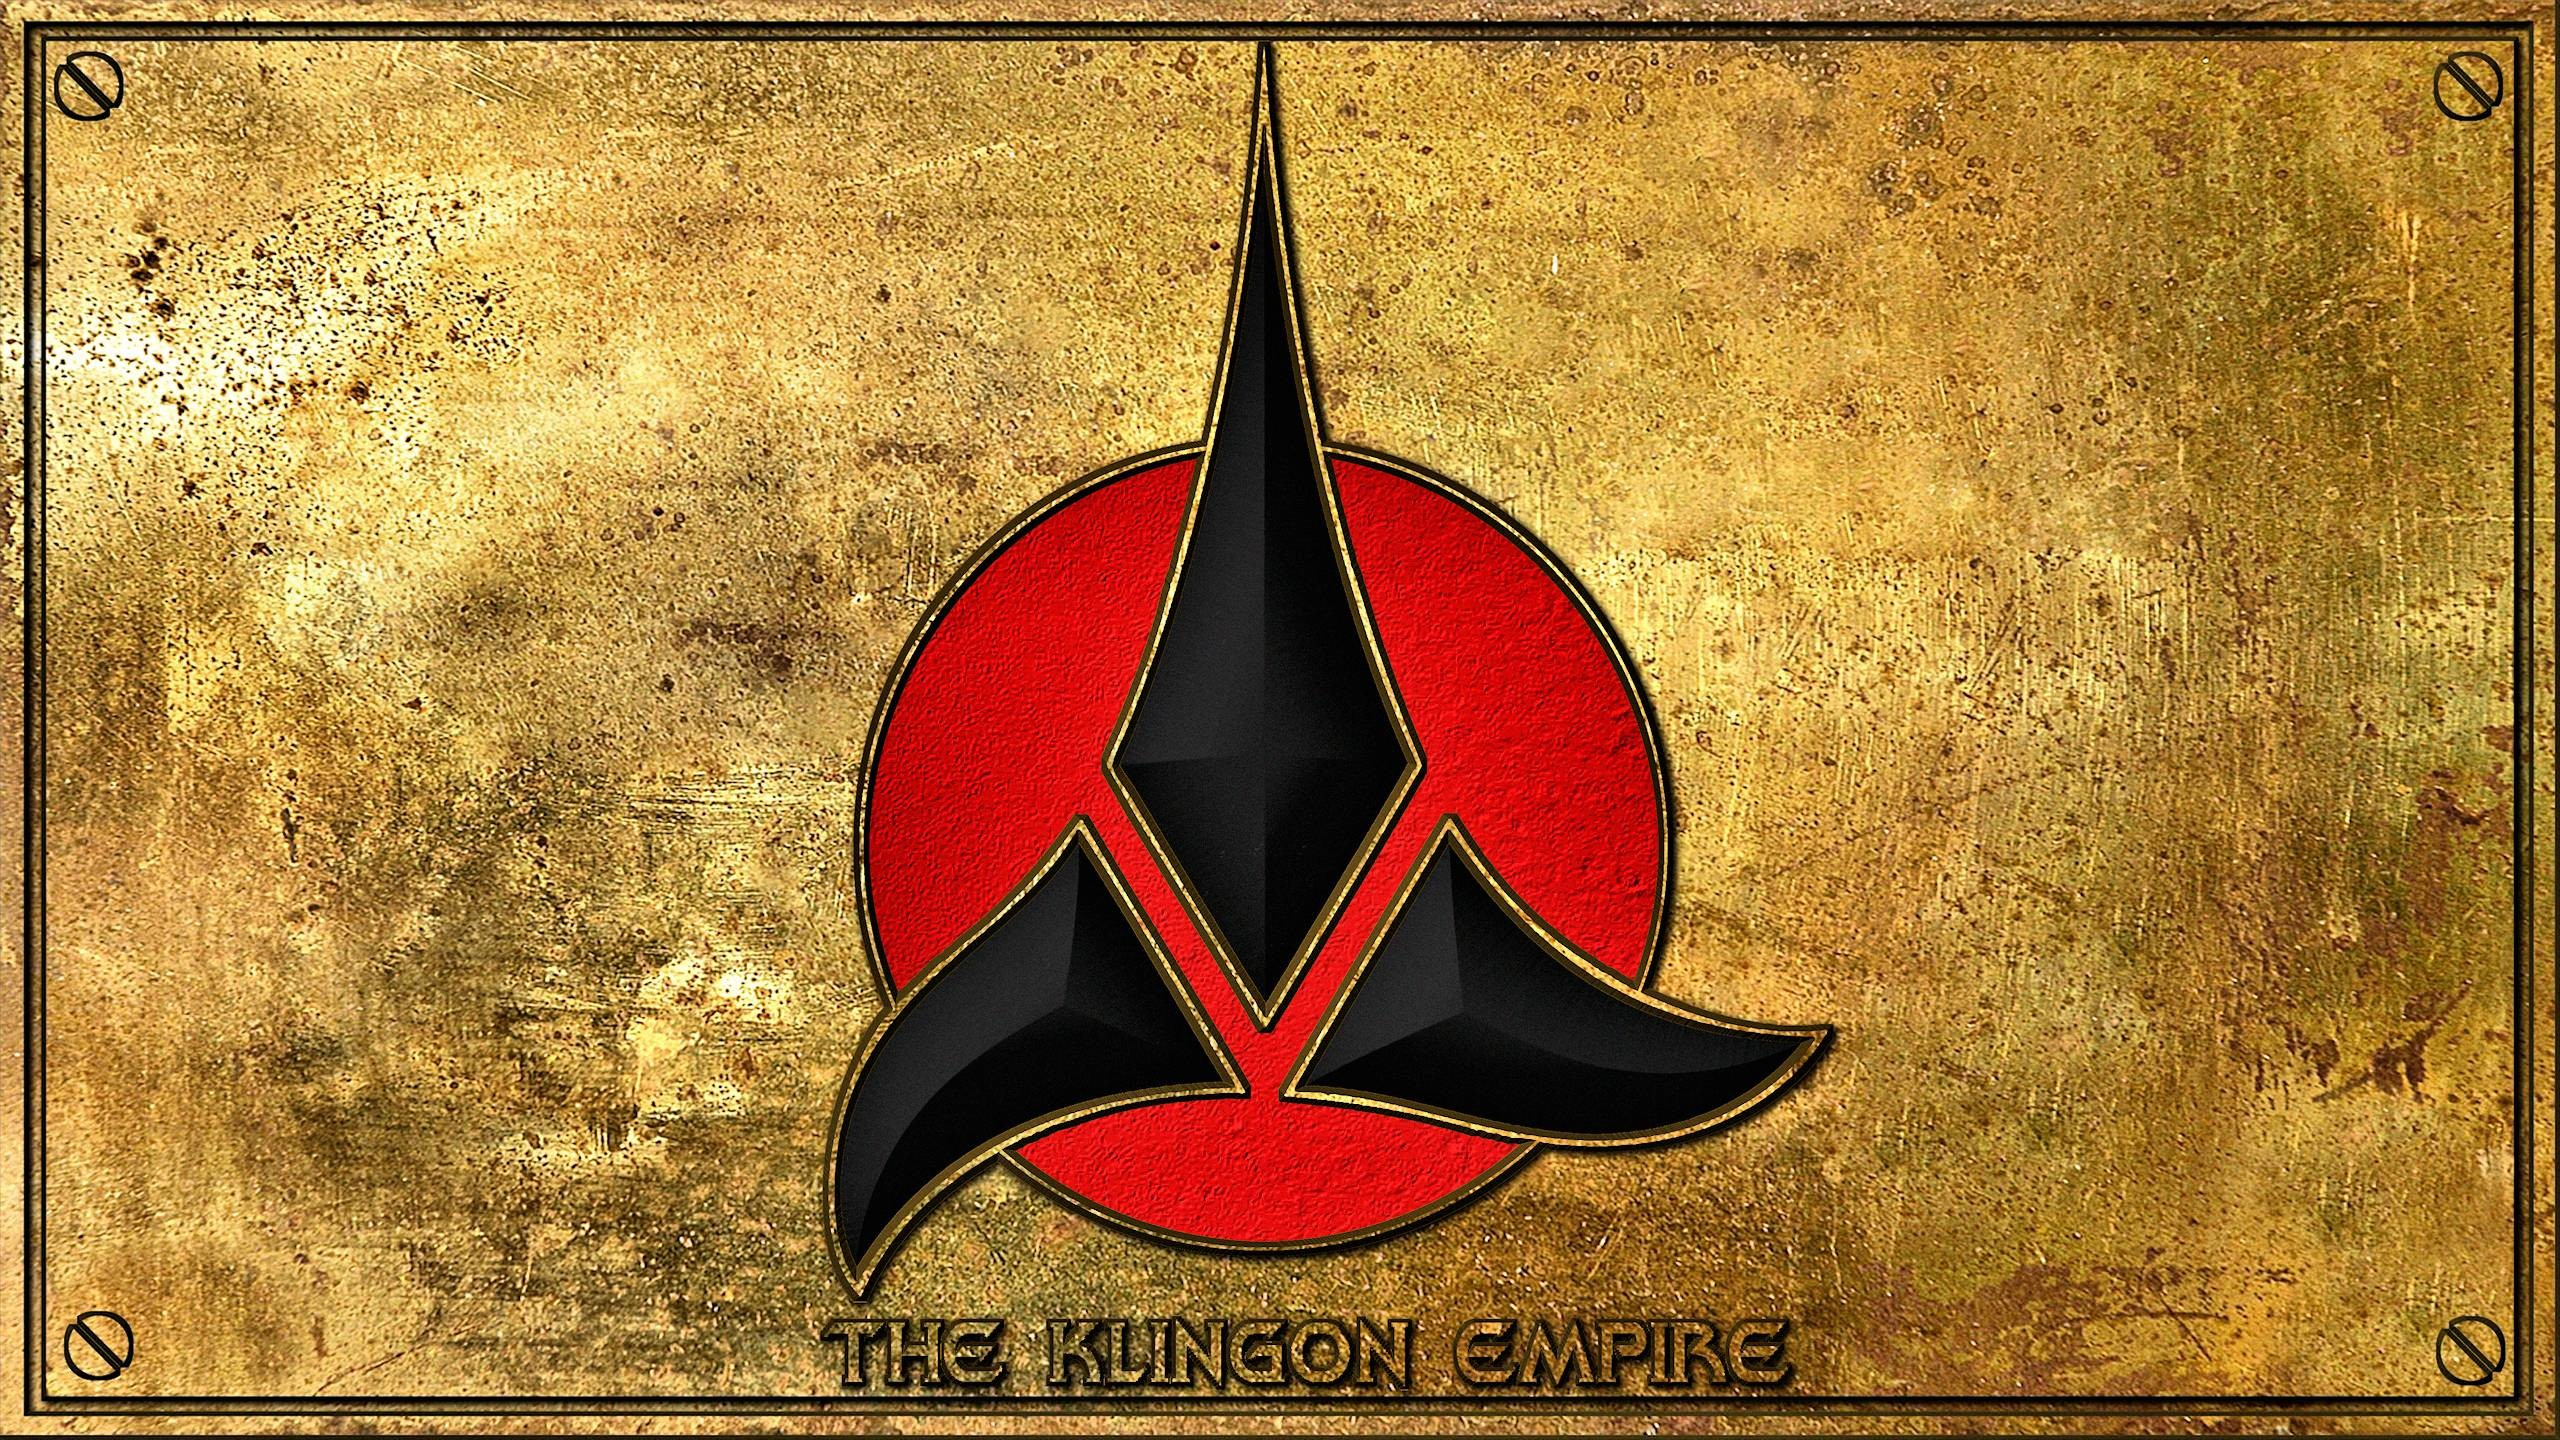 Klingon Symbol Wallpaper 81 images  Get the Best HD